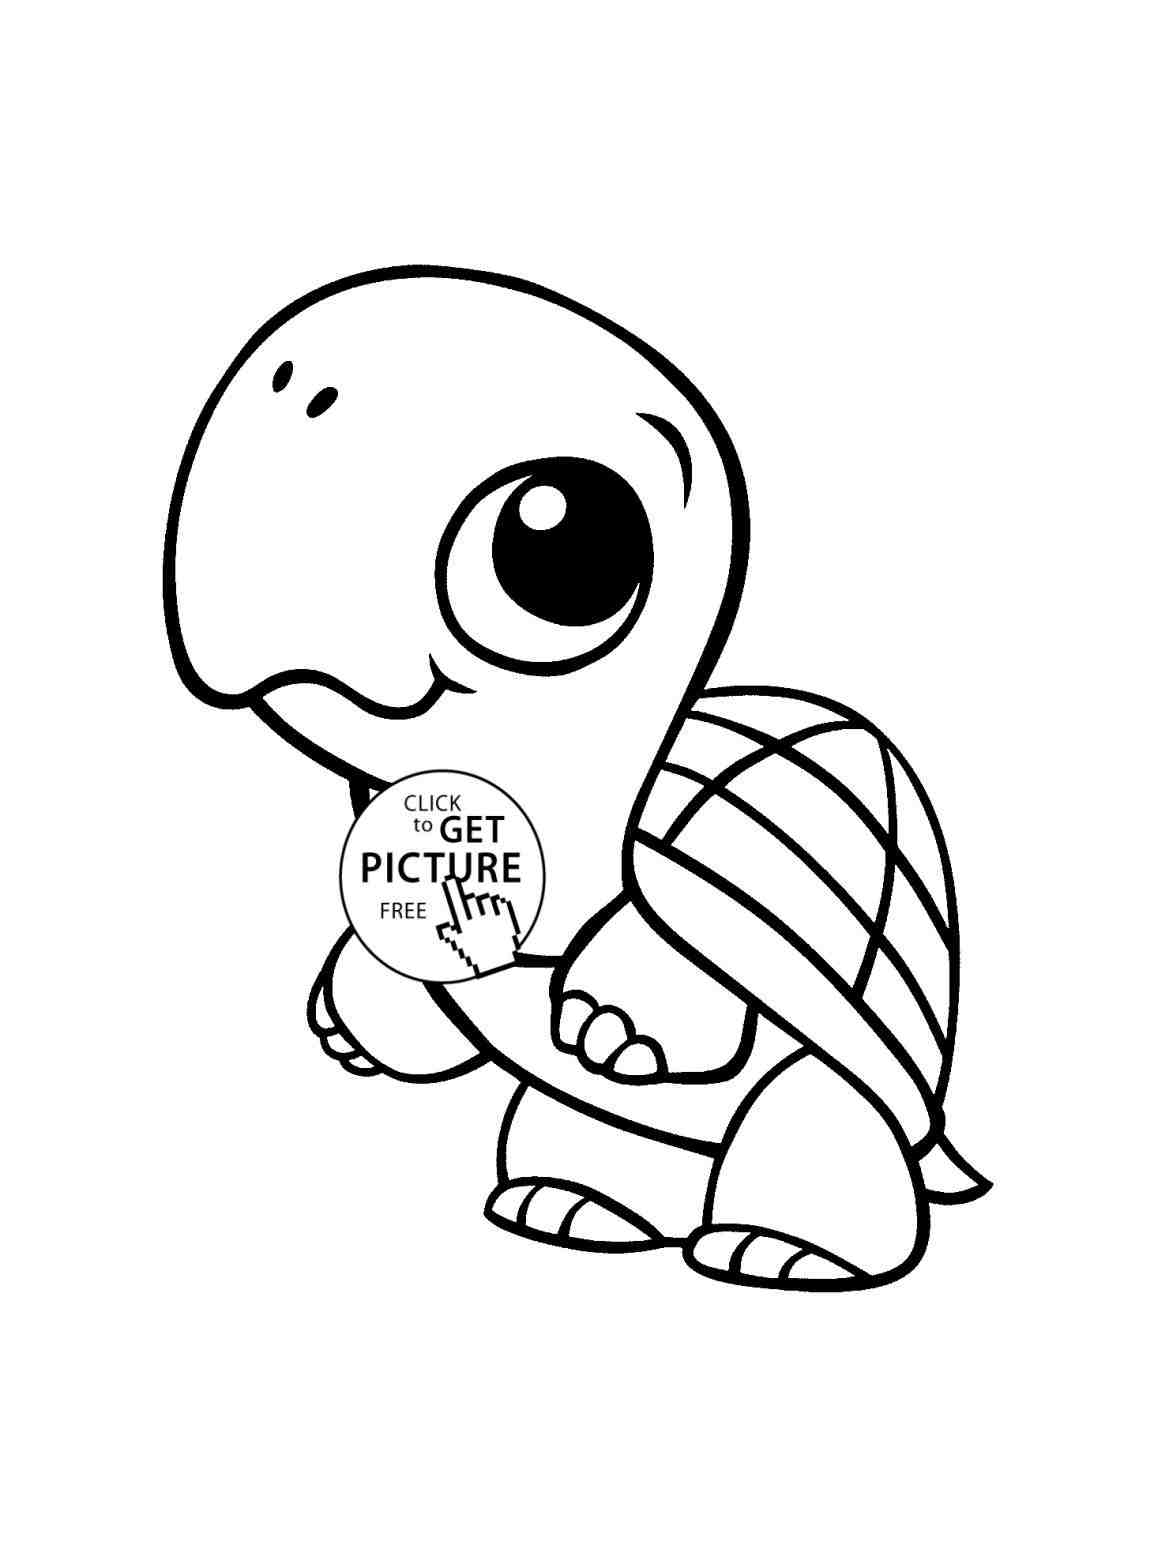 images of turtles to color sea turtle coloring pages sea turtle drawing turtle of images turtles to color